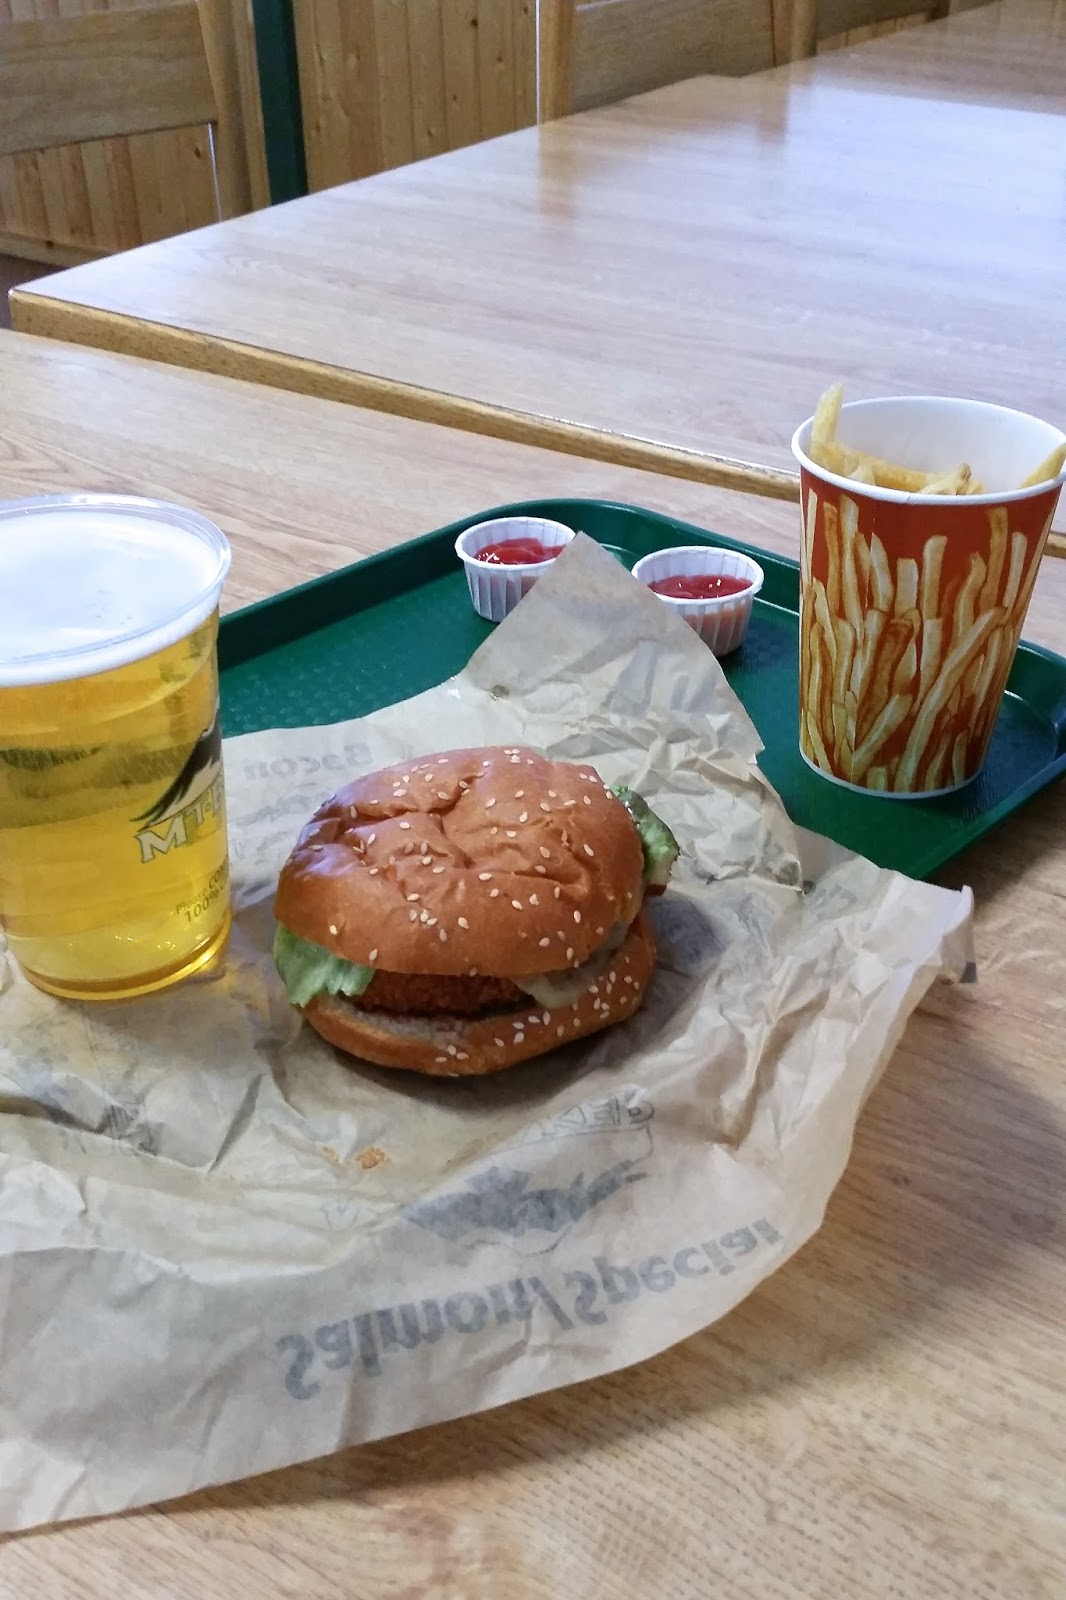 chicken burger and beer on green serving tray